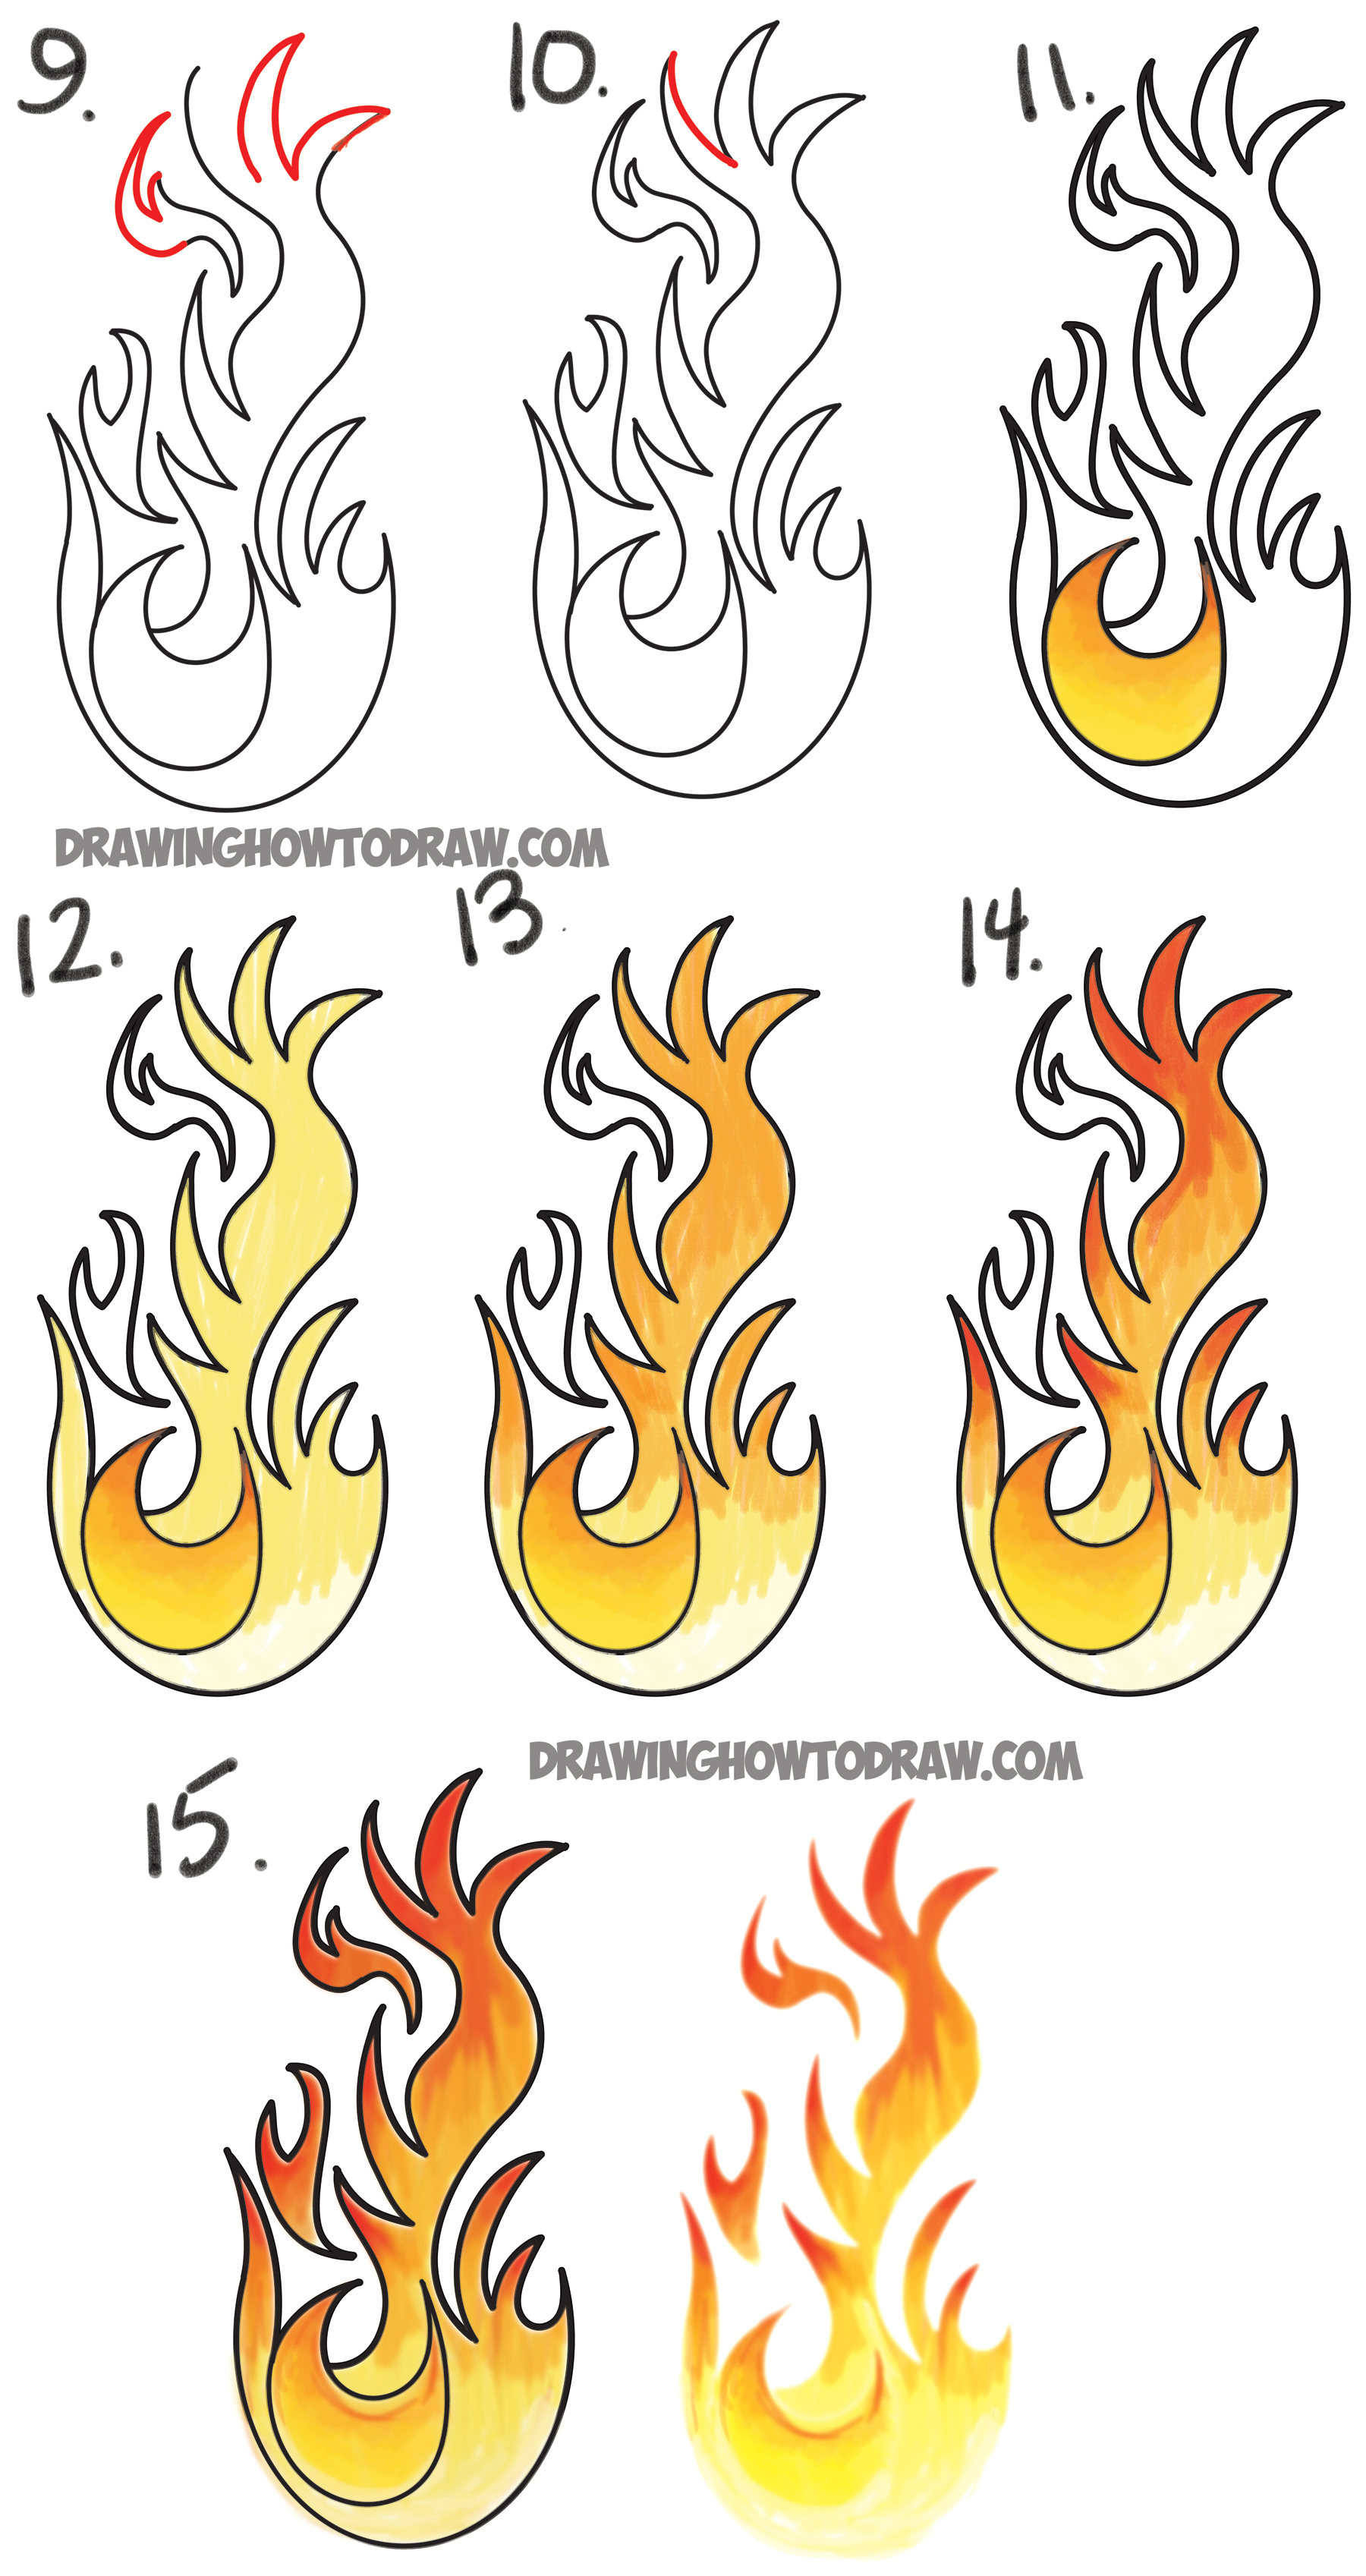 drawing cartoon flames easy step by step drawing tutorial